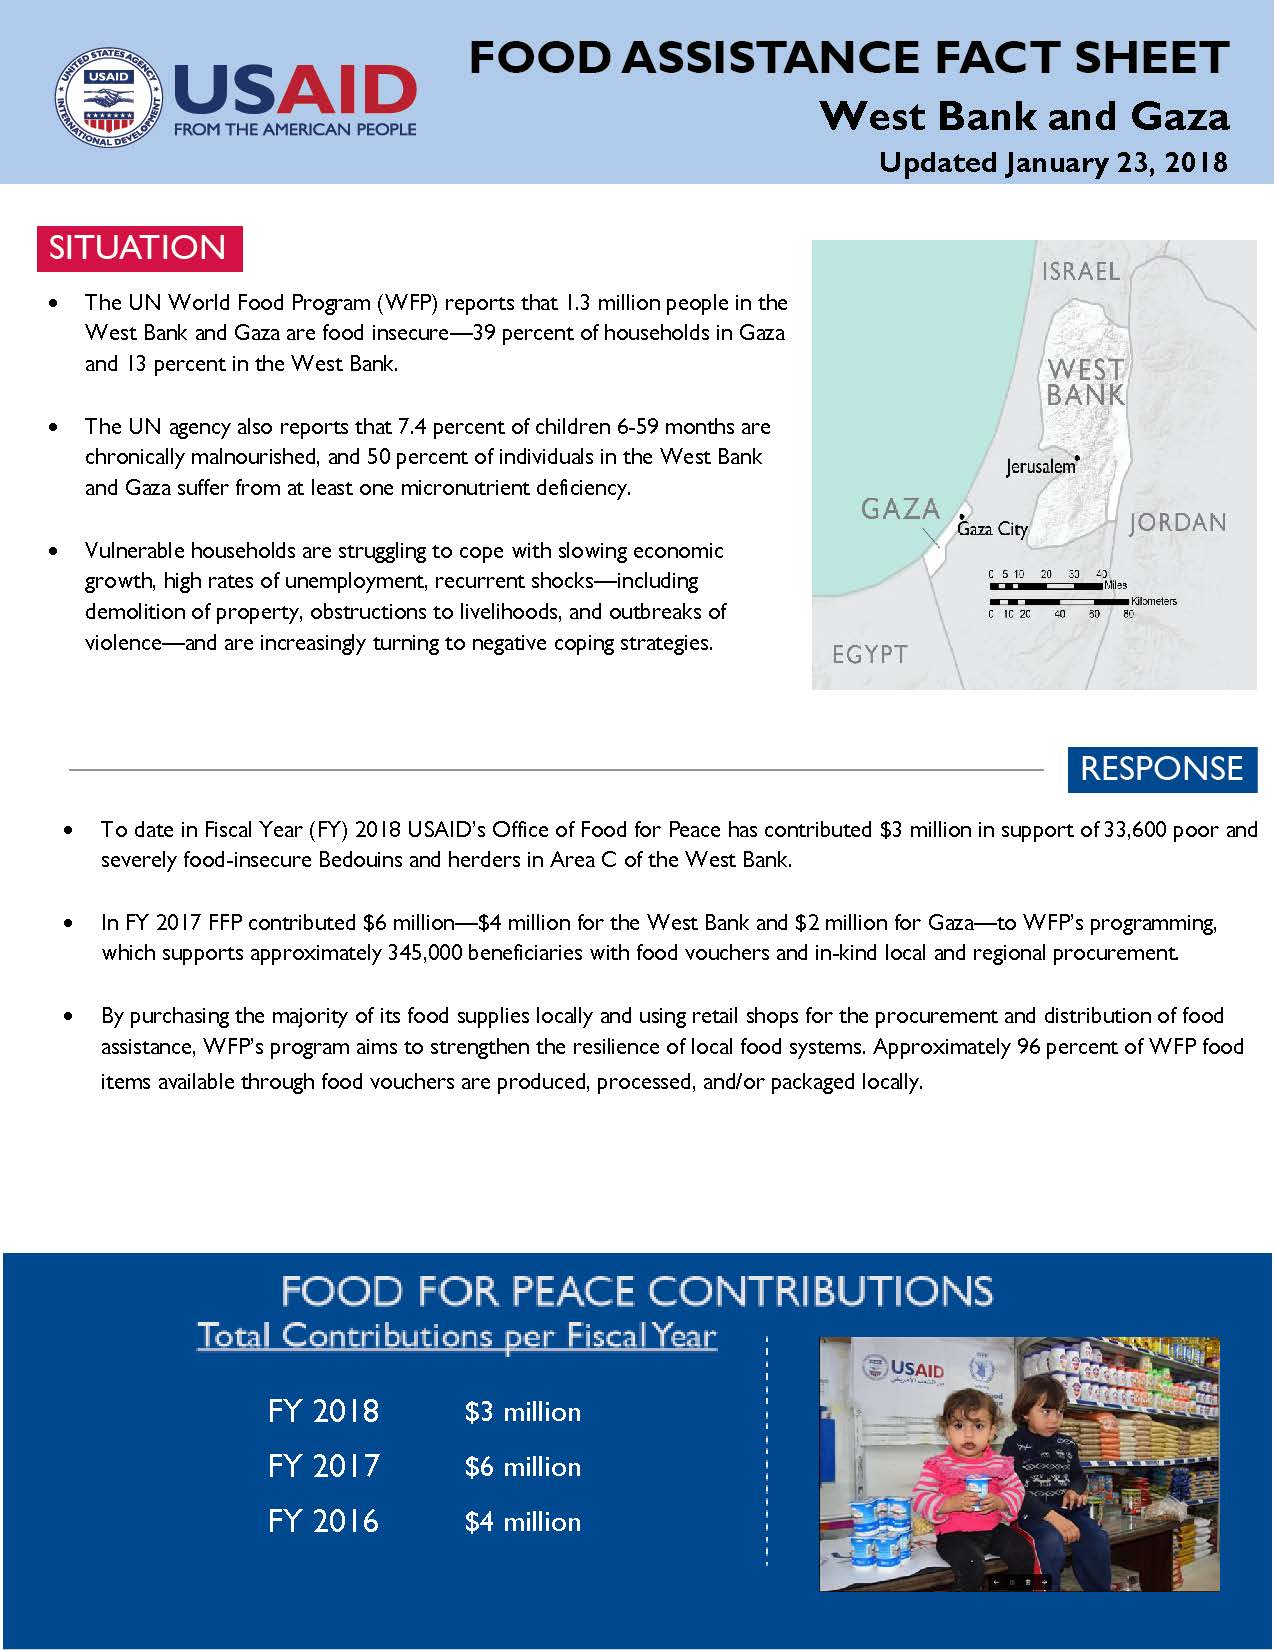 Food Assistance Fact Sheet - West Bank and Gaza